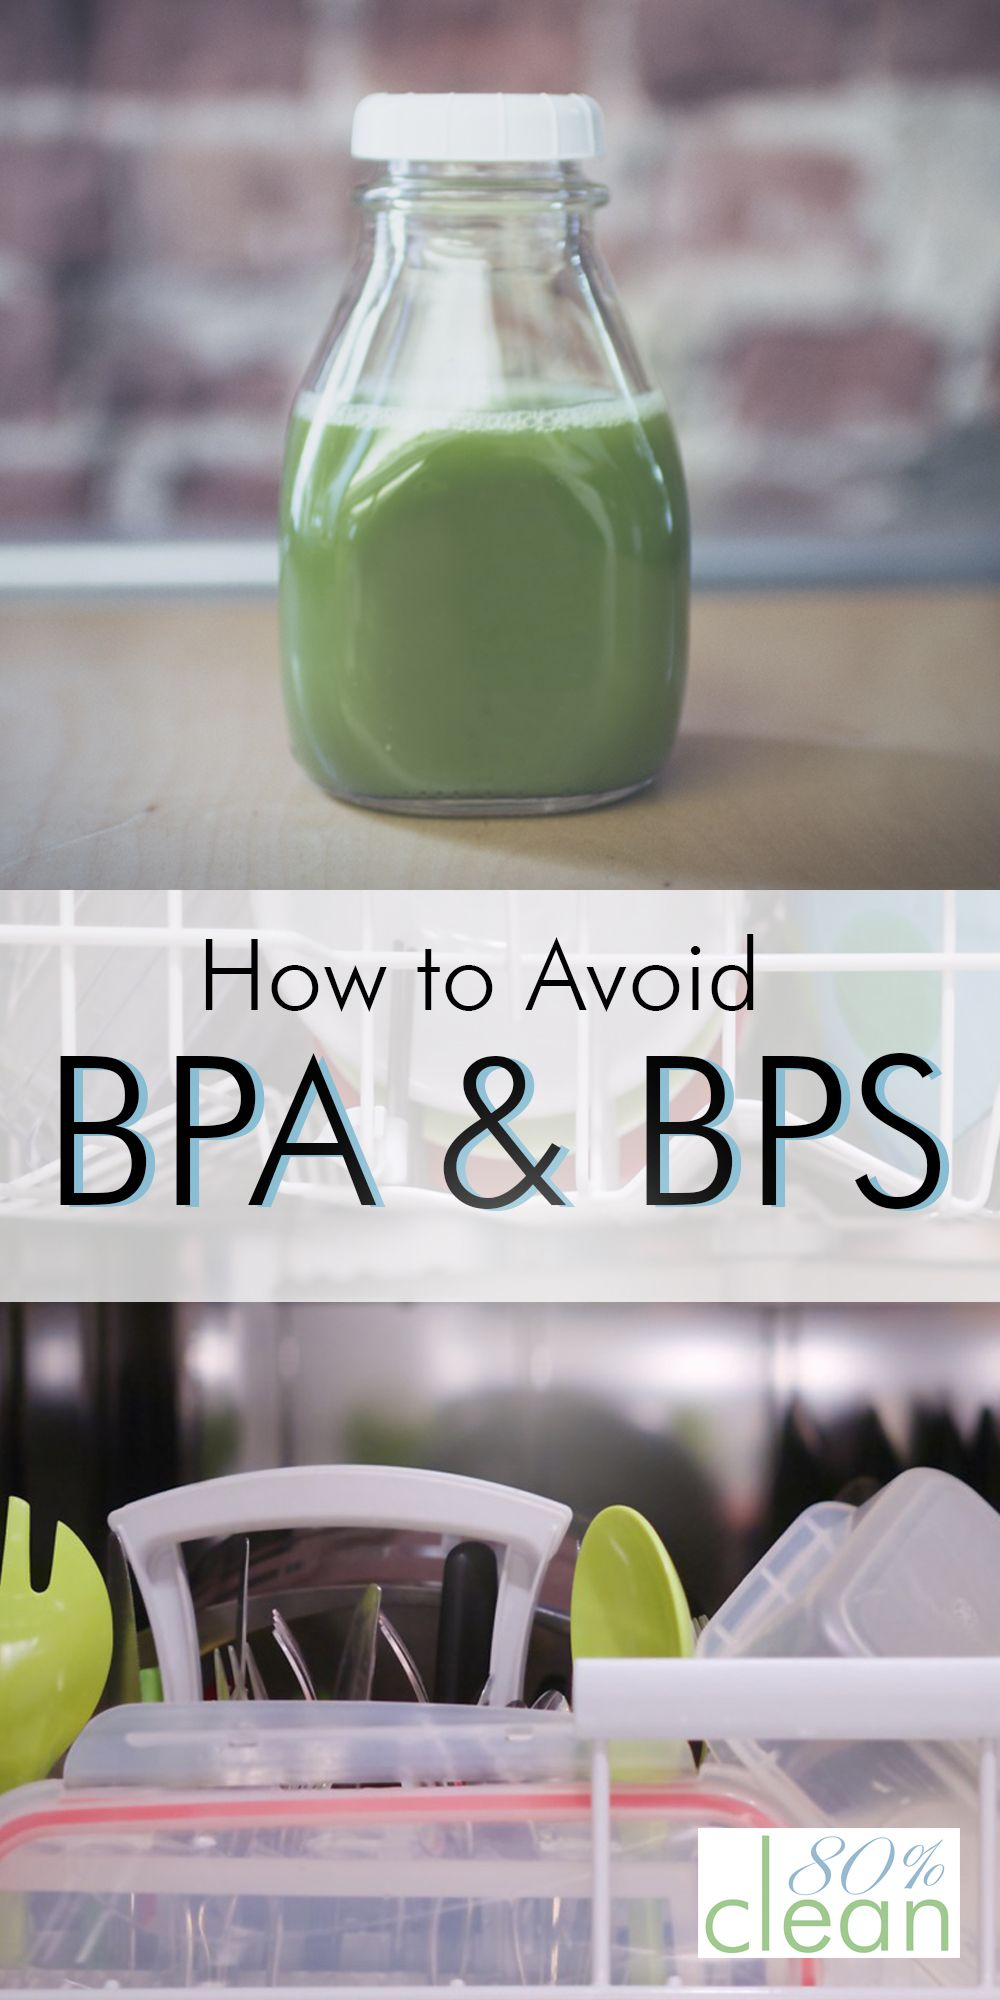 I didn't realize how many products contain BPA and BPS and how bad they were for you! Great tips on how to go BPA free.